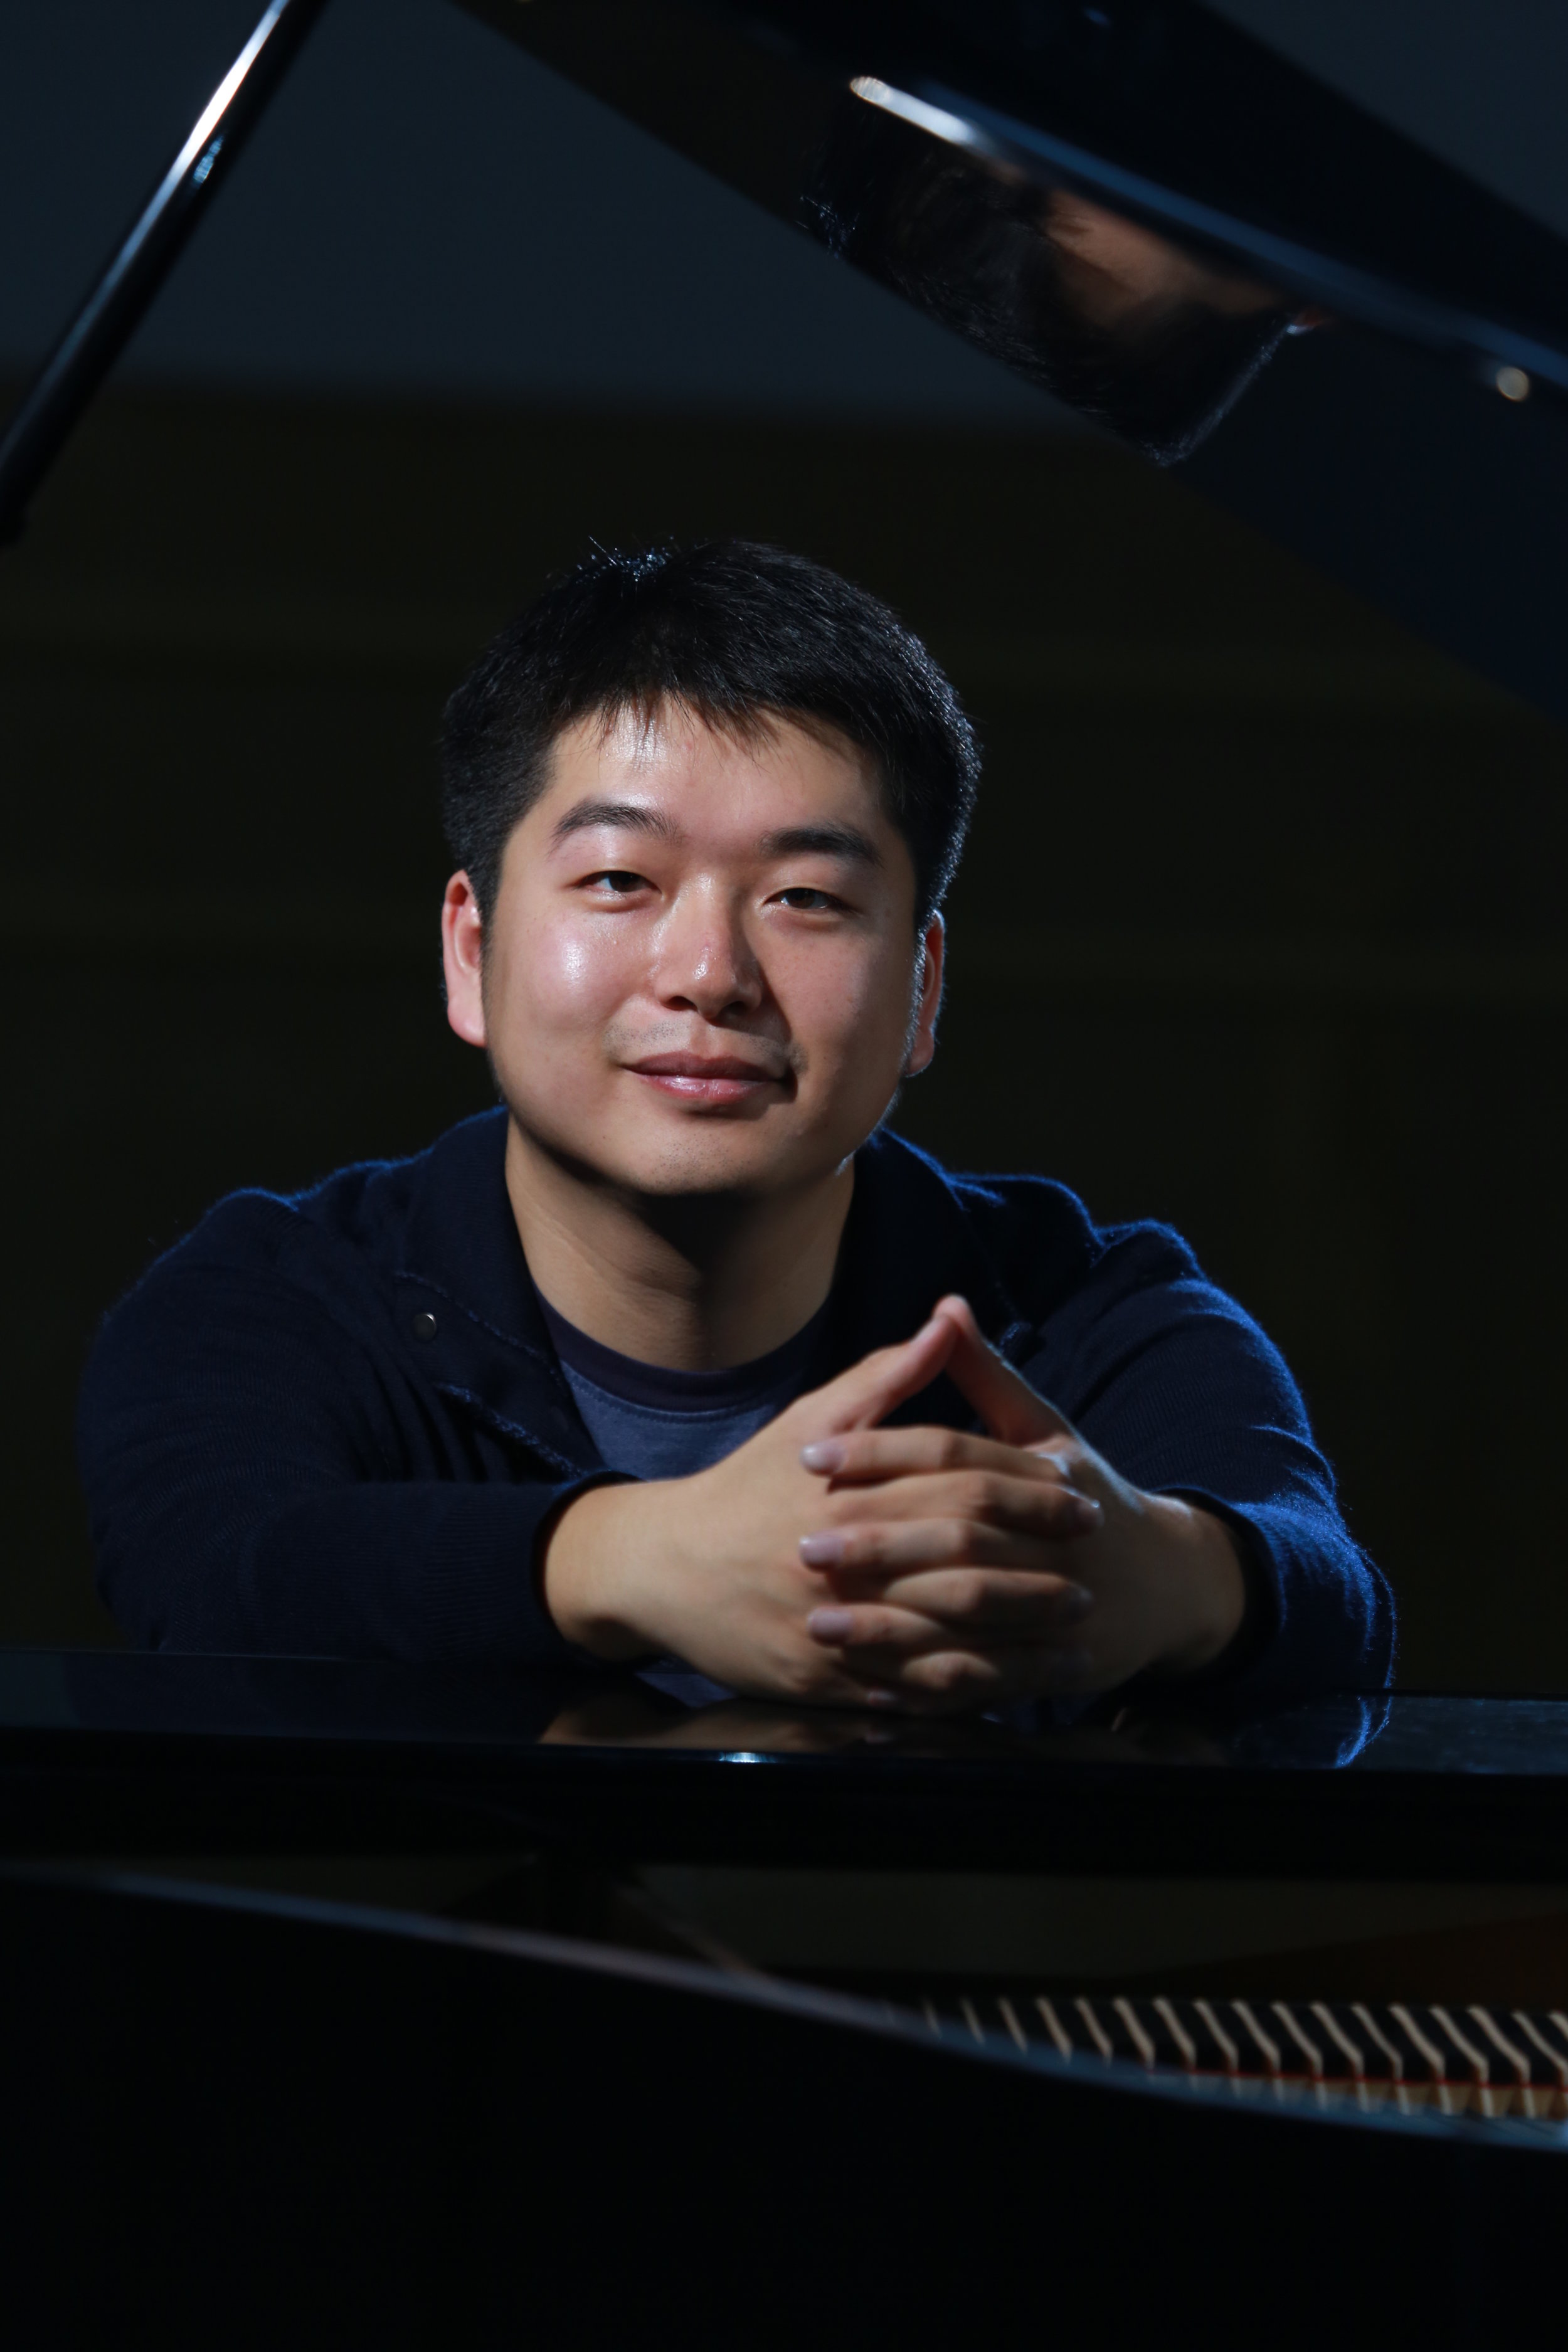 Tony Chen – Composer (photo credit:  https://tonychenmusic.com/bio/)